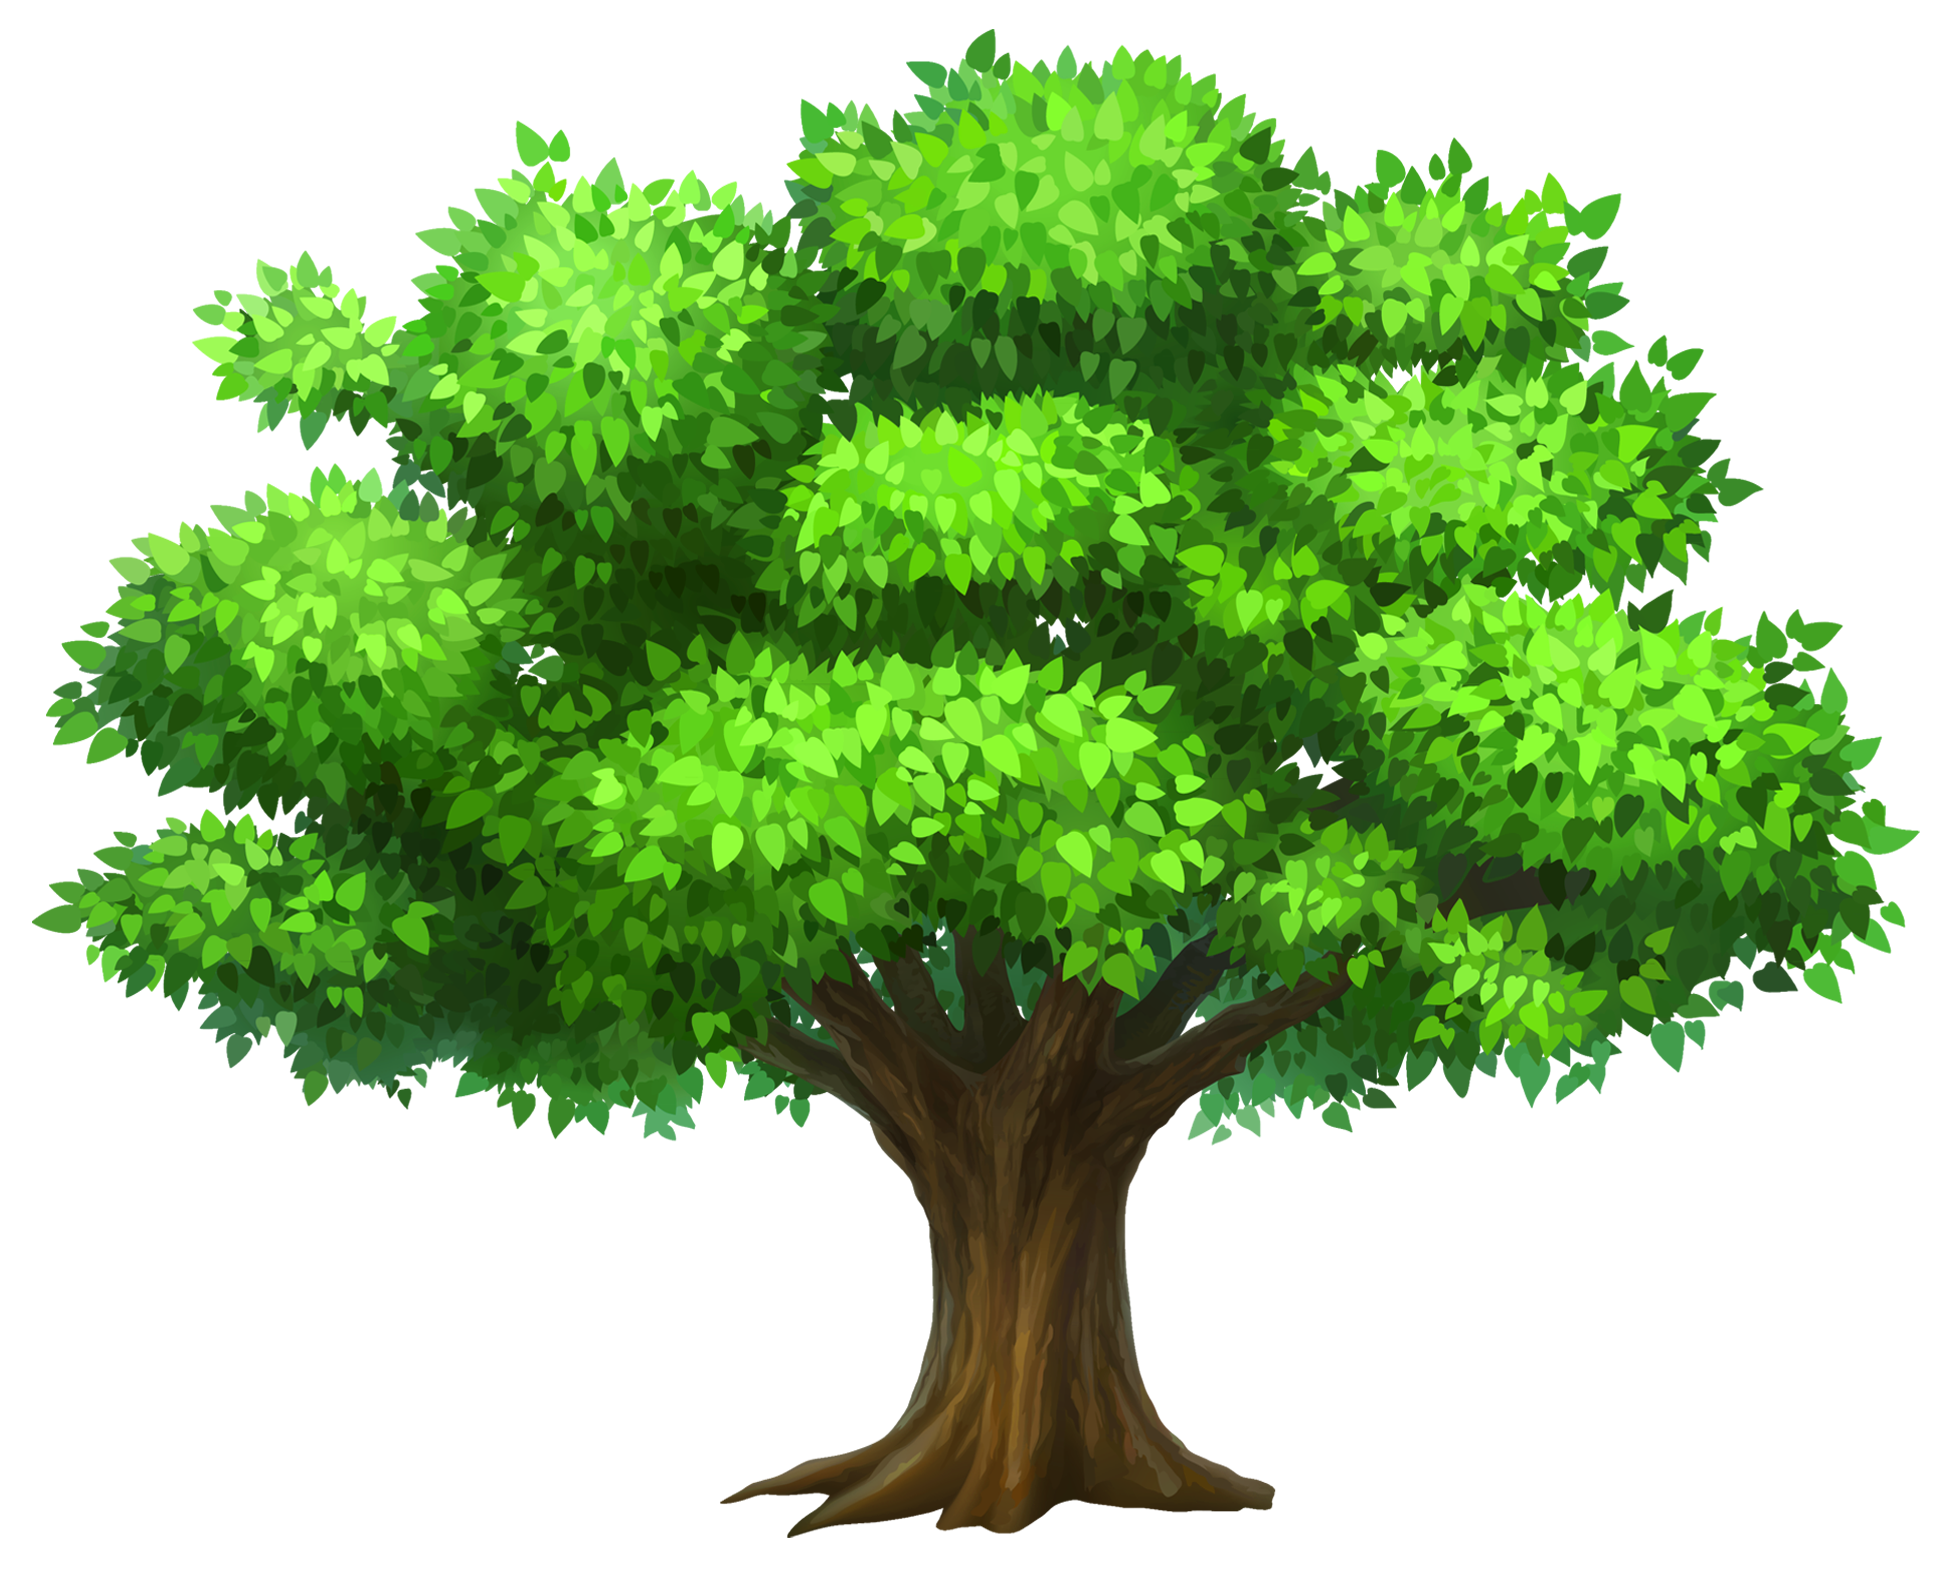 Oak tree tree clipart clipart | landscapes | Pinterest | Tree ... graphic library download